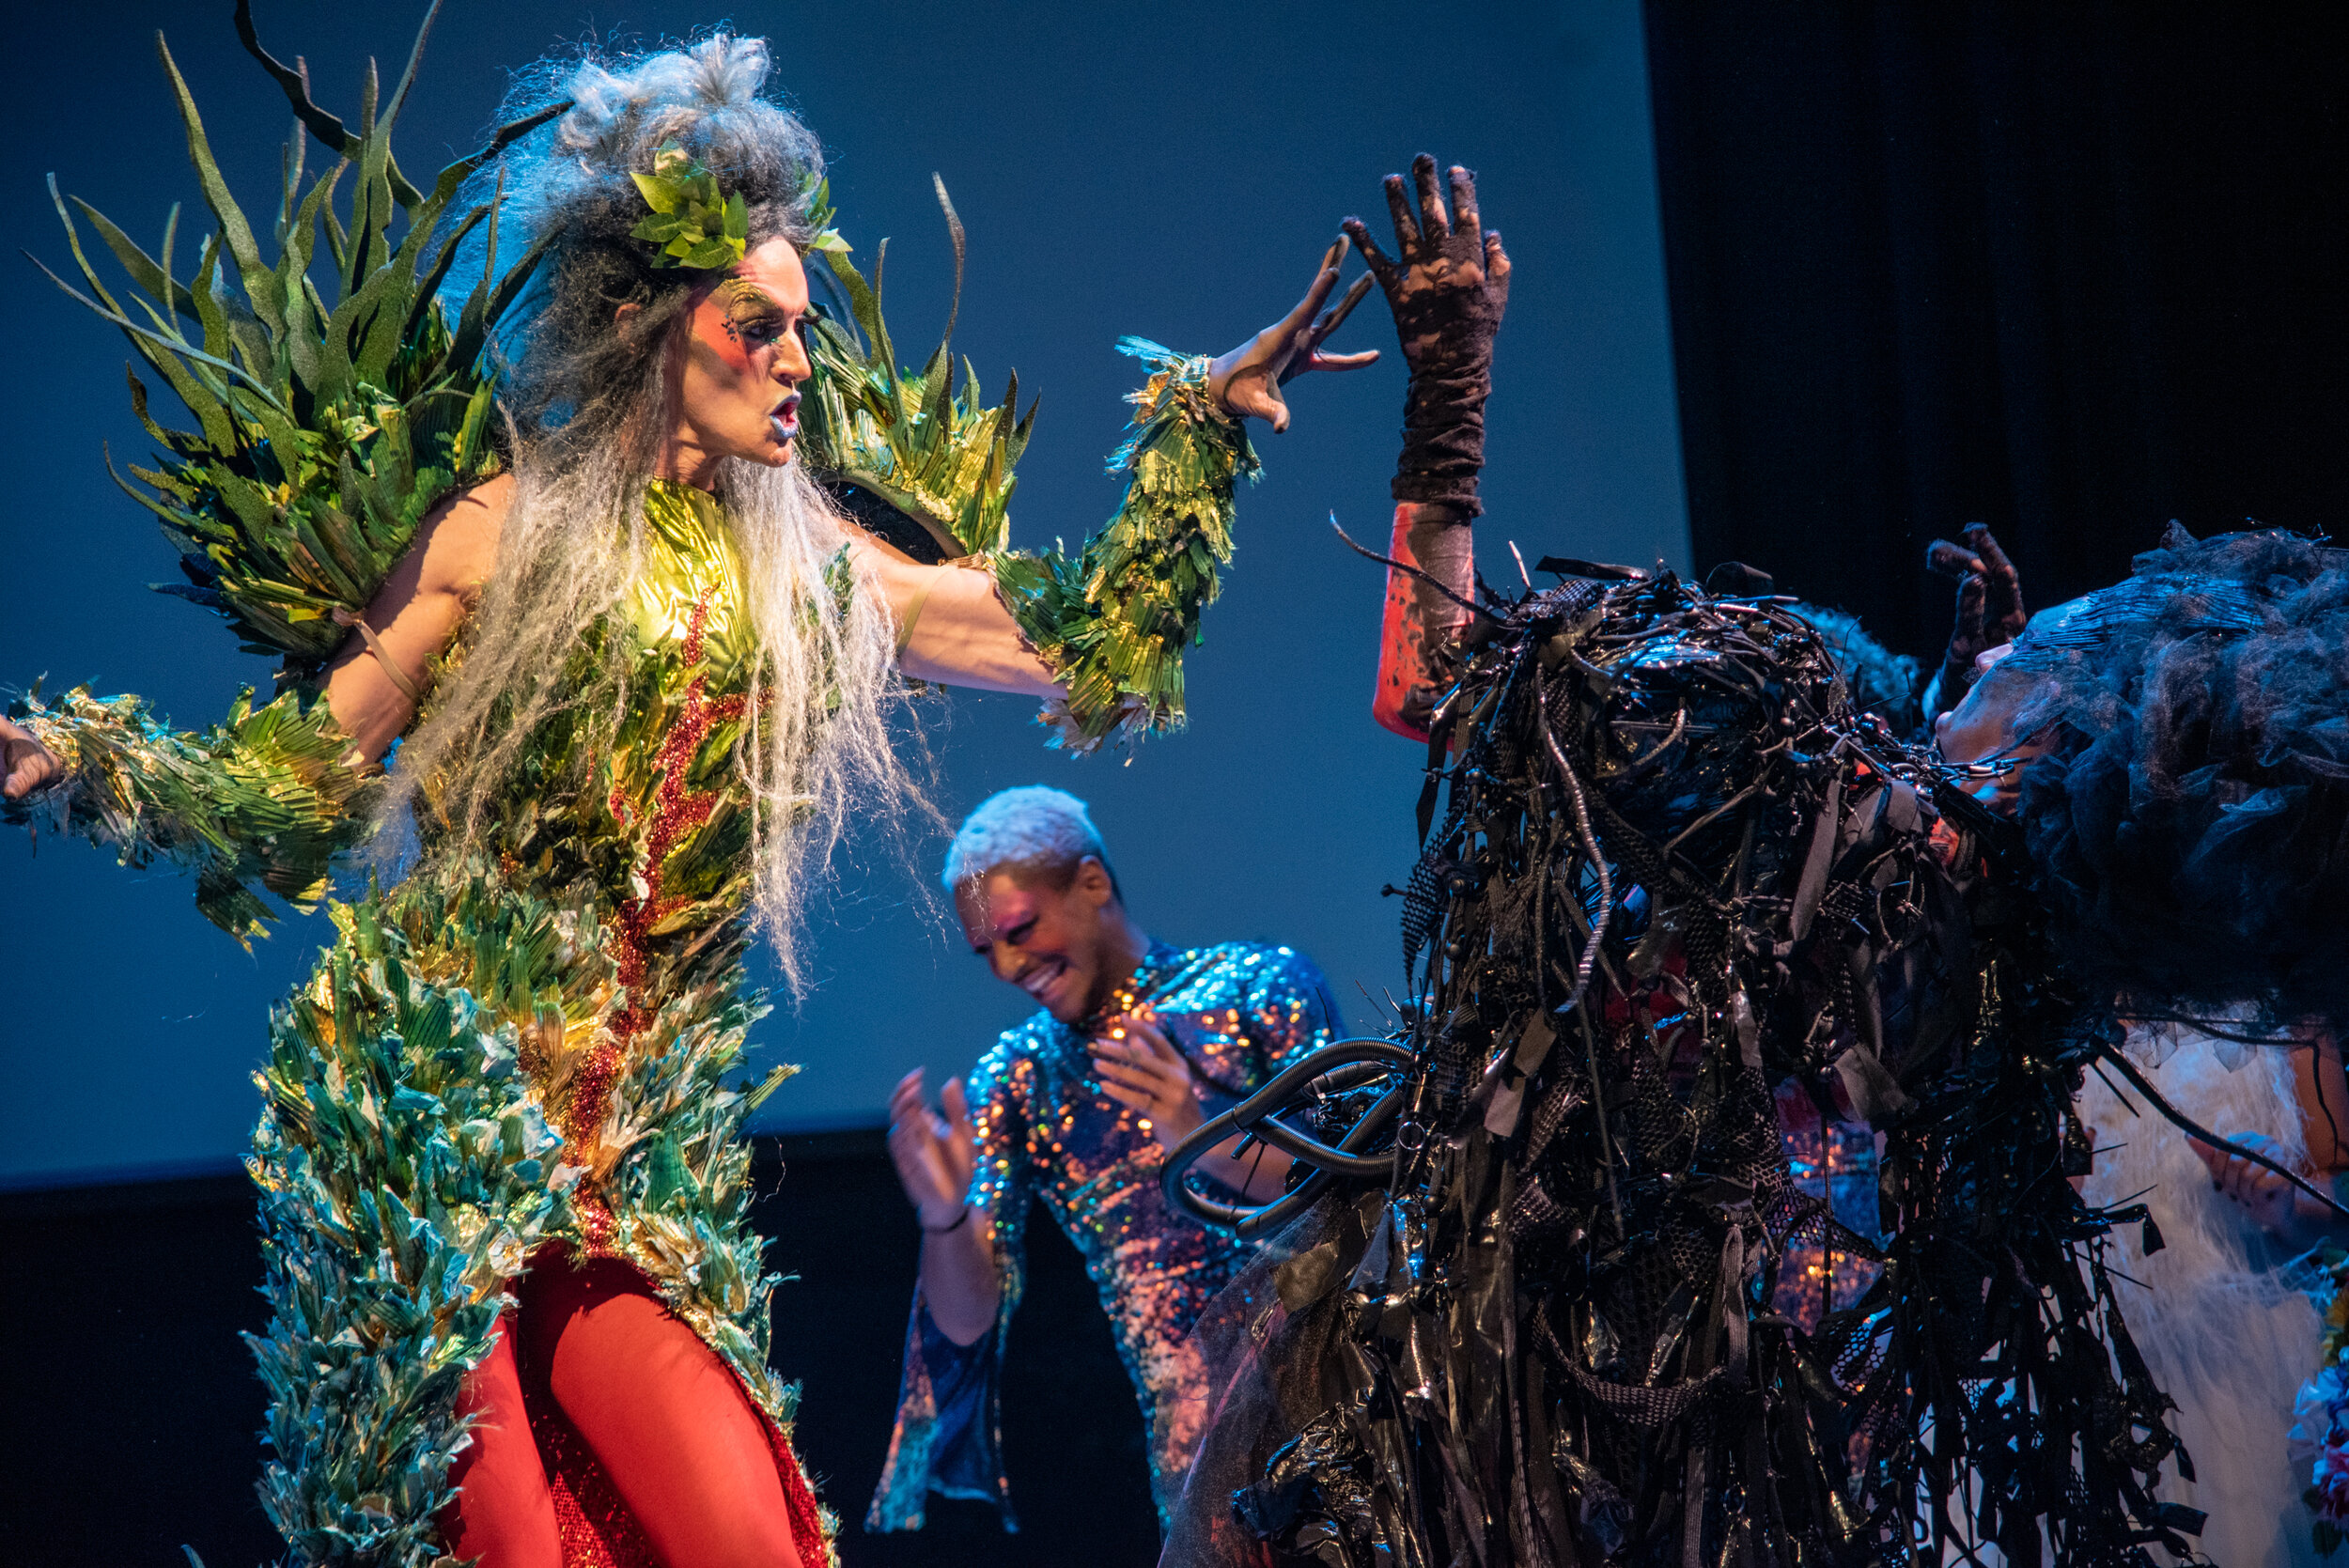 """HOT MAMA - Singing Gays Saving GaiaOctober 30-31, 2019Roulette, BrooklynHeartbeat's beloved tradition of mixing opera, drag, and pastiche returns to Roulette. This year, we celebrate Mother Earth in all her beauty and biodiversity. What will happen when Gaia herself confronts the terrifying Monster of Climate Collapse? Meltdown or salvation? Through virtuosic renditions of arias by Wagner, Vivaldi, Bernstein, Adams, and more, this extravaganza confronts the ultimate drama of our day. Expect operatic emissions, high """"C's"""", and polar baritones!"""